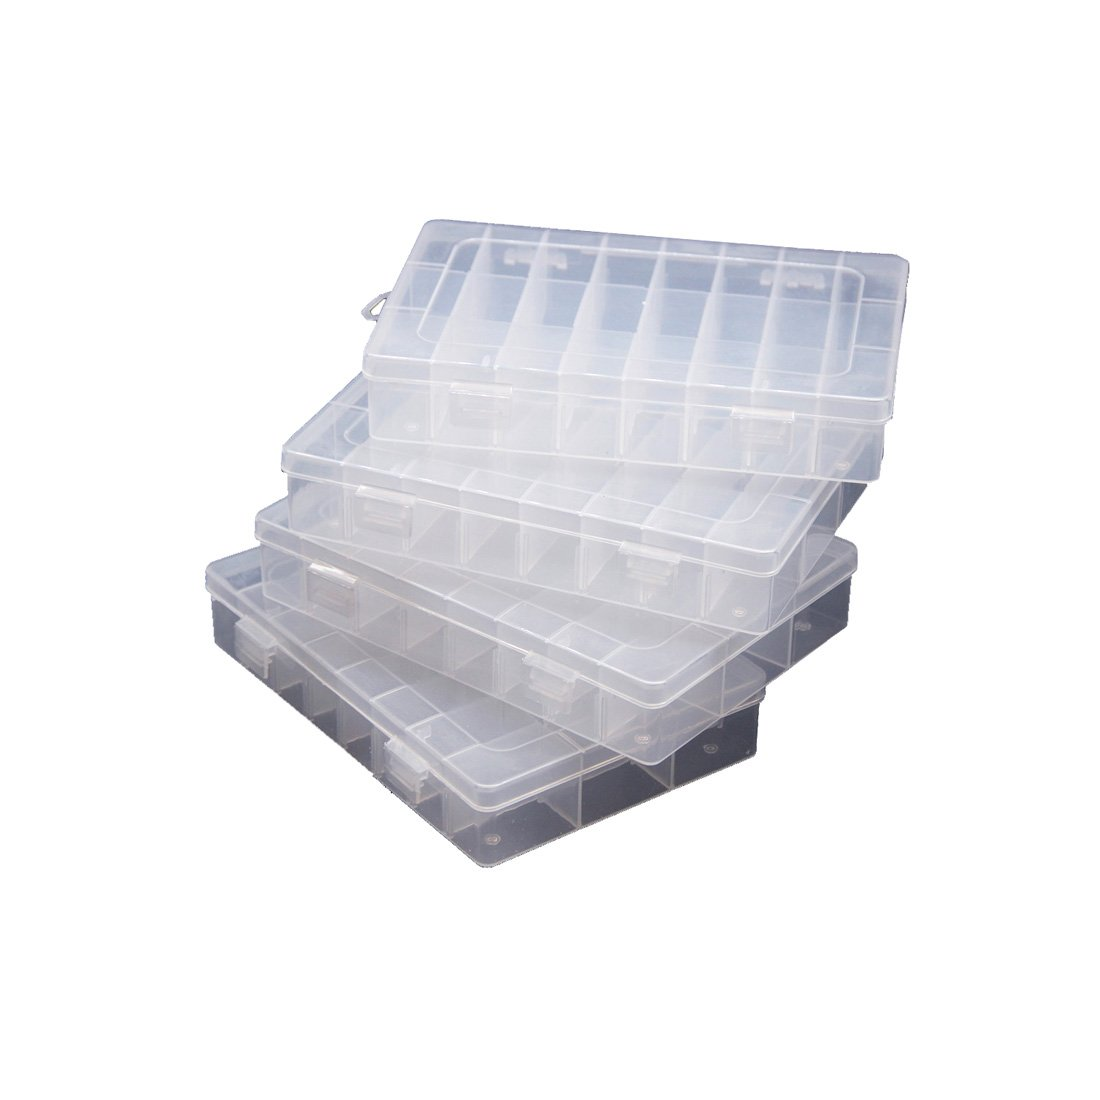 4 PCS Clear Plastic Jewelry Box Organizers 24 Grid with Adjustable Dividers for Beads Earrings Necklaces Rings Metal Parts Accessories Screws Button Storage Box Container